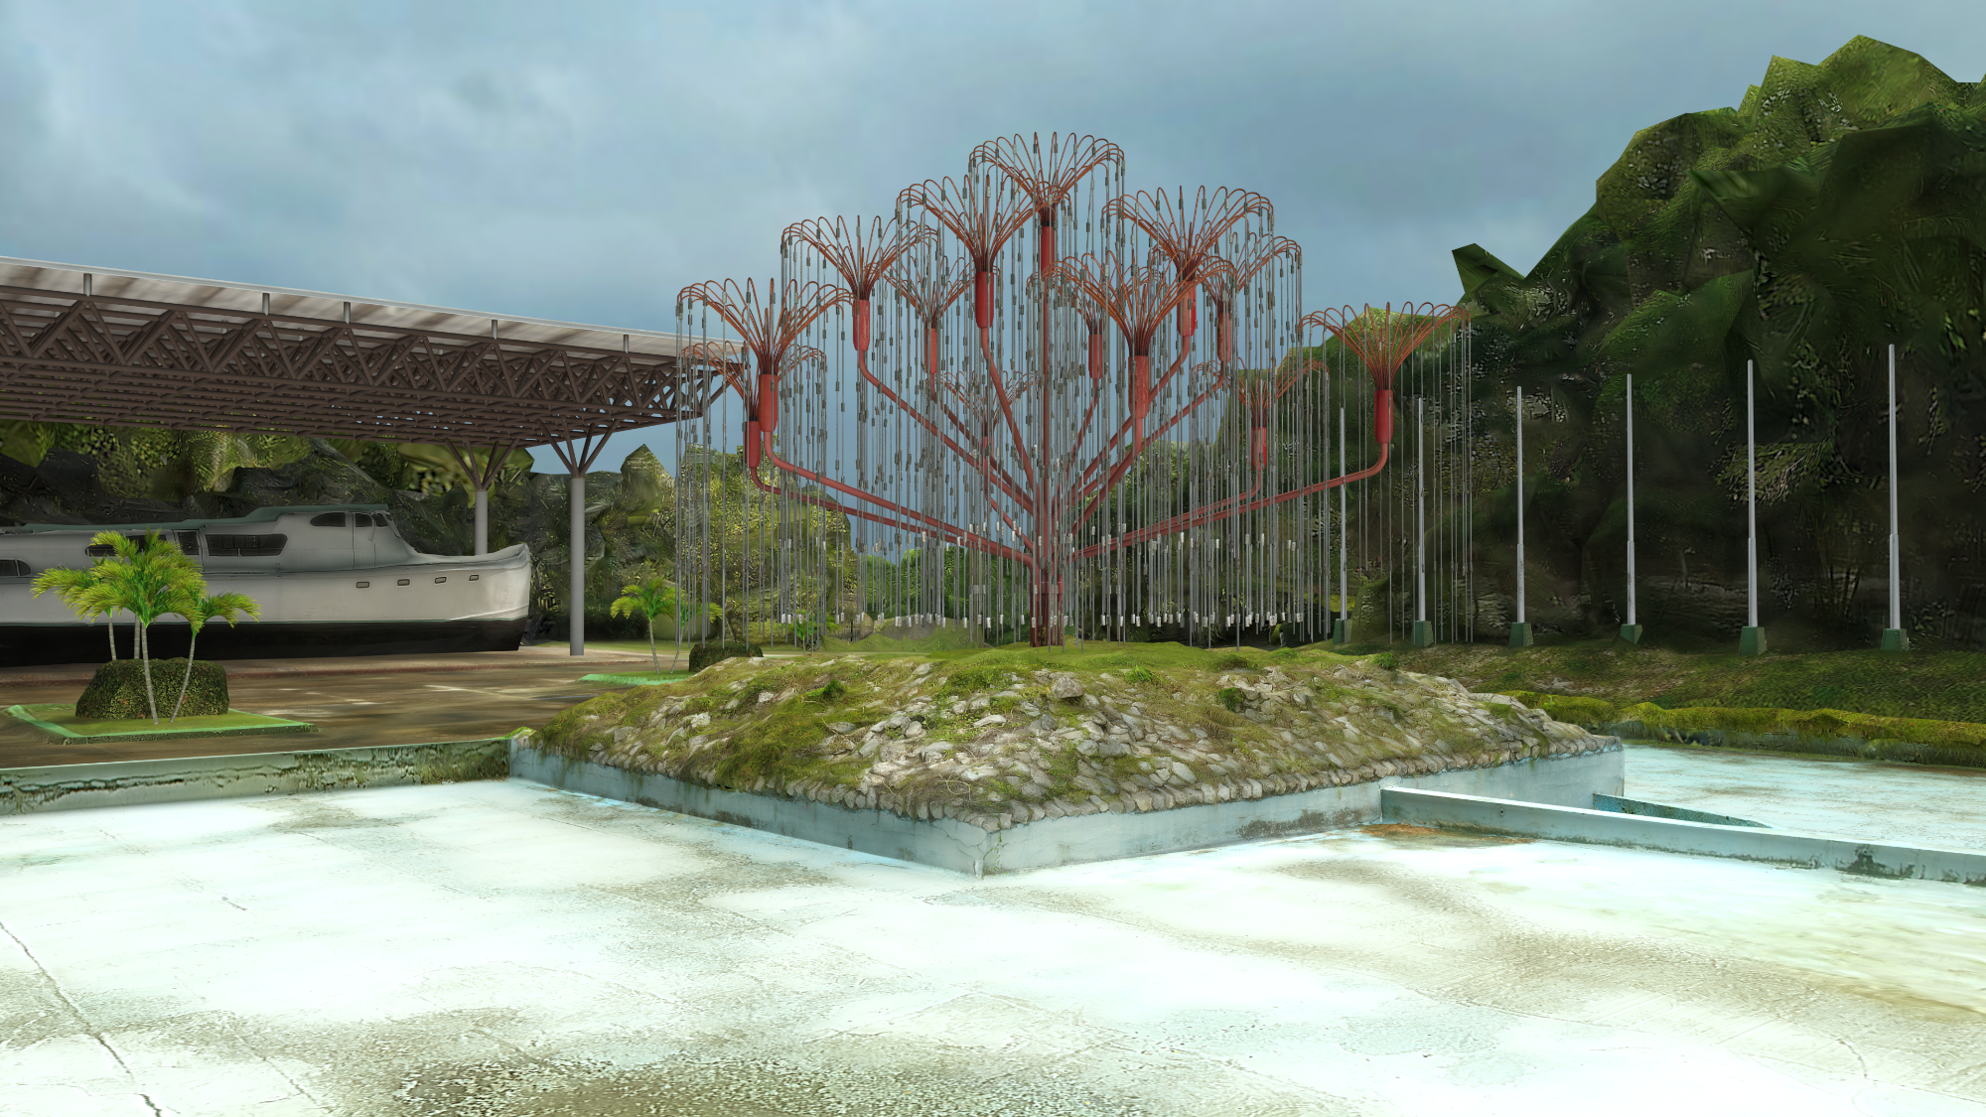 Arbol Rojo, to be viewed on the HMD Odyssey Mixed Reality Headset. A challenge due to low polycount restrictions, unrestrained camera, and lack of lighting controls.